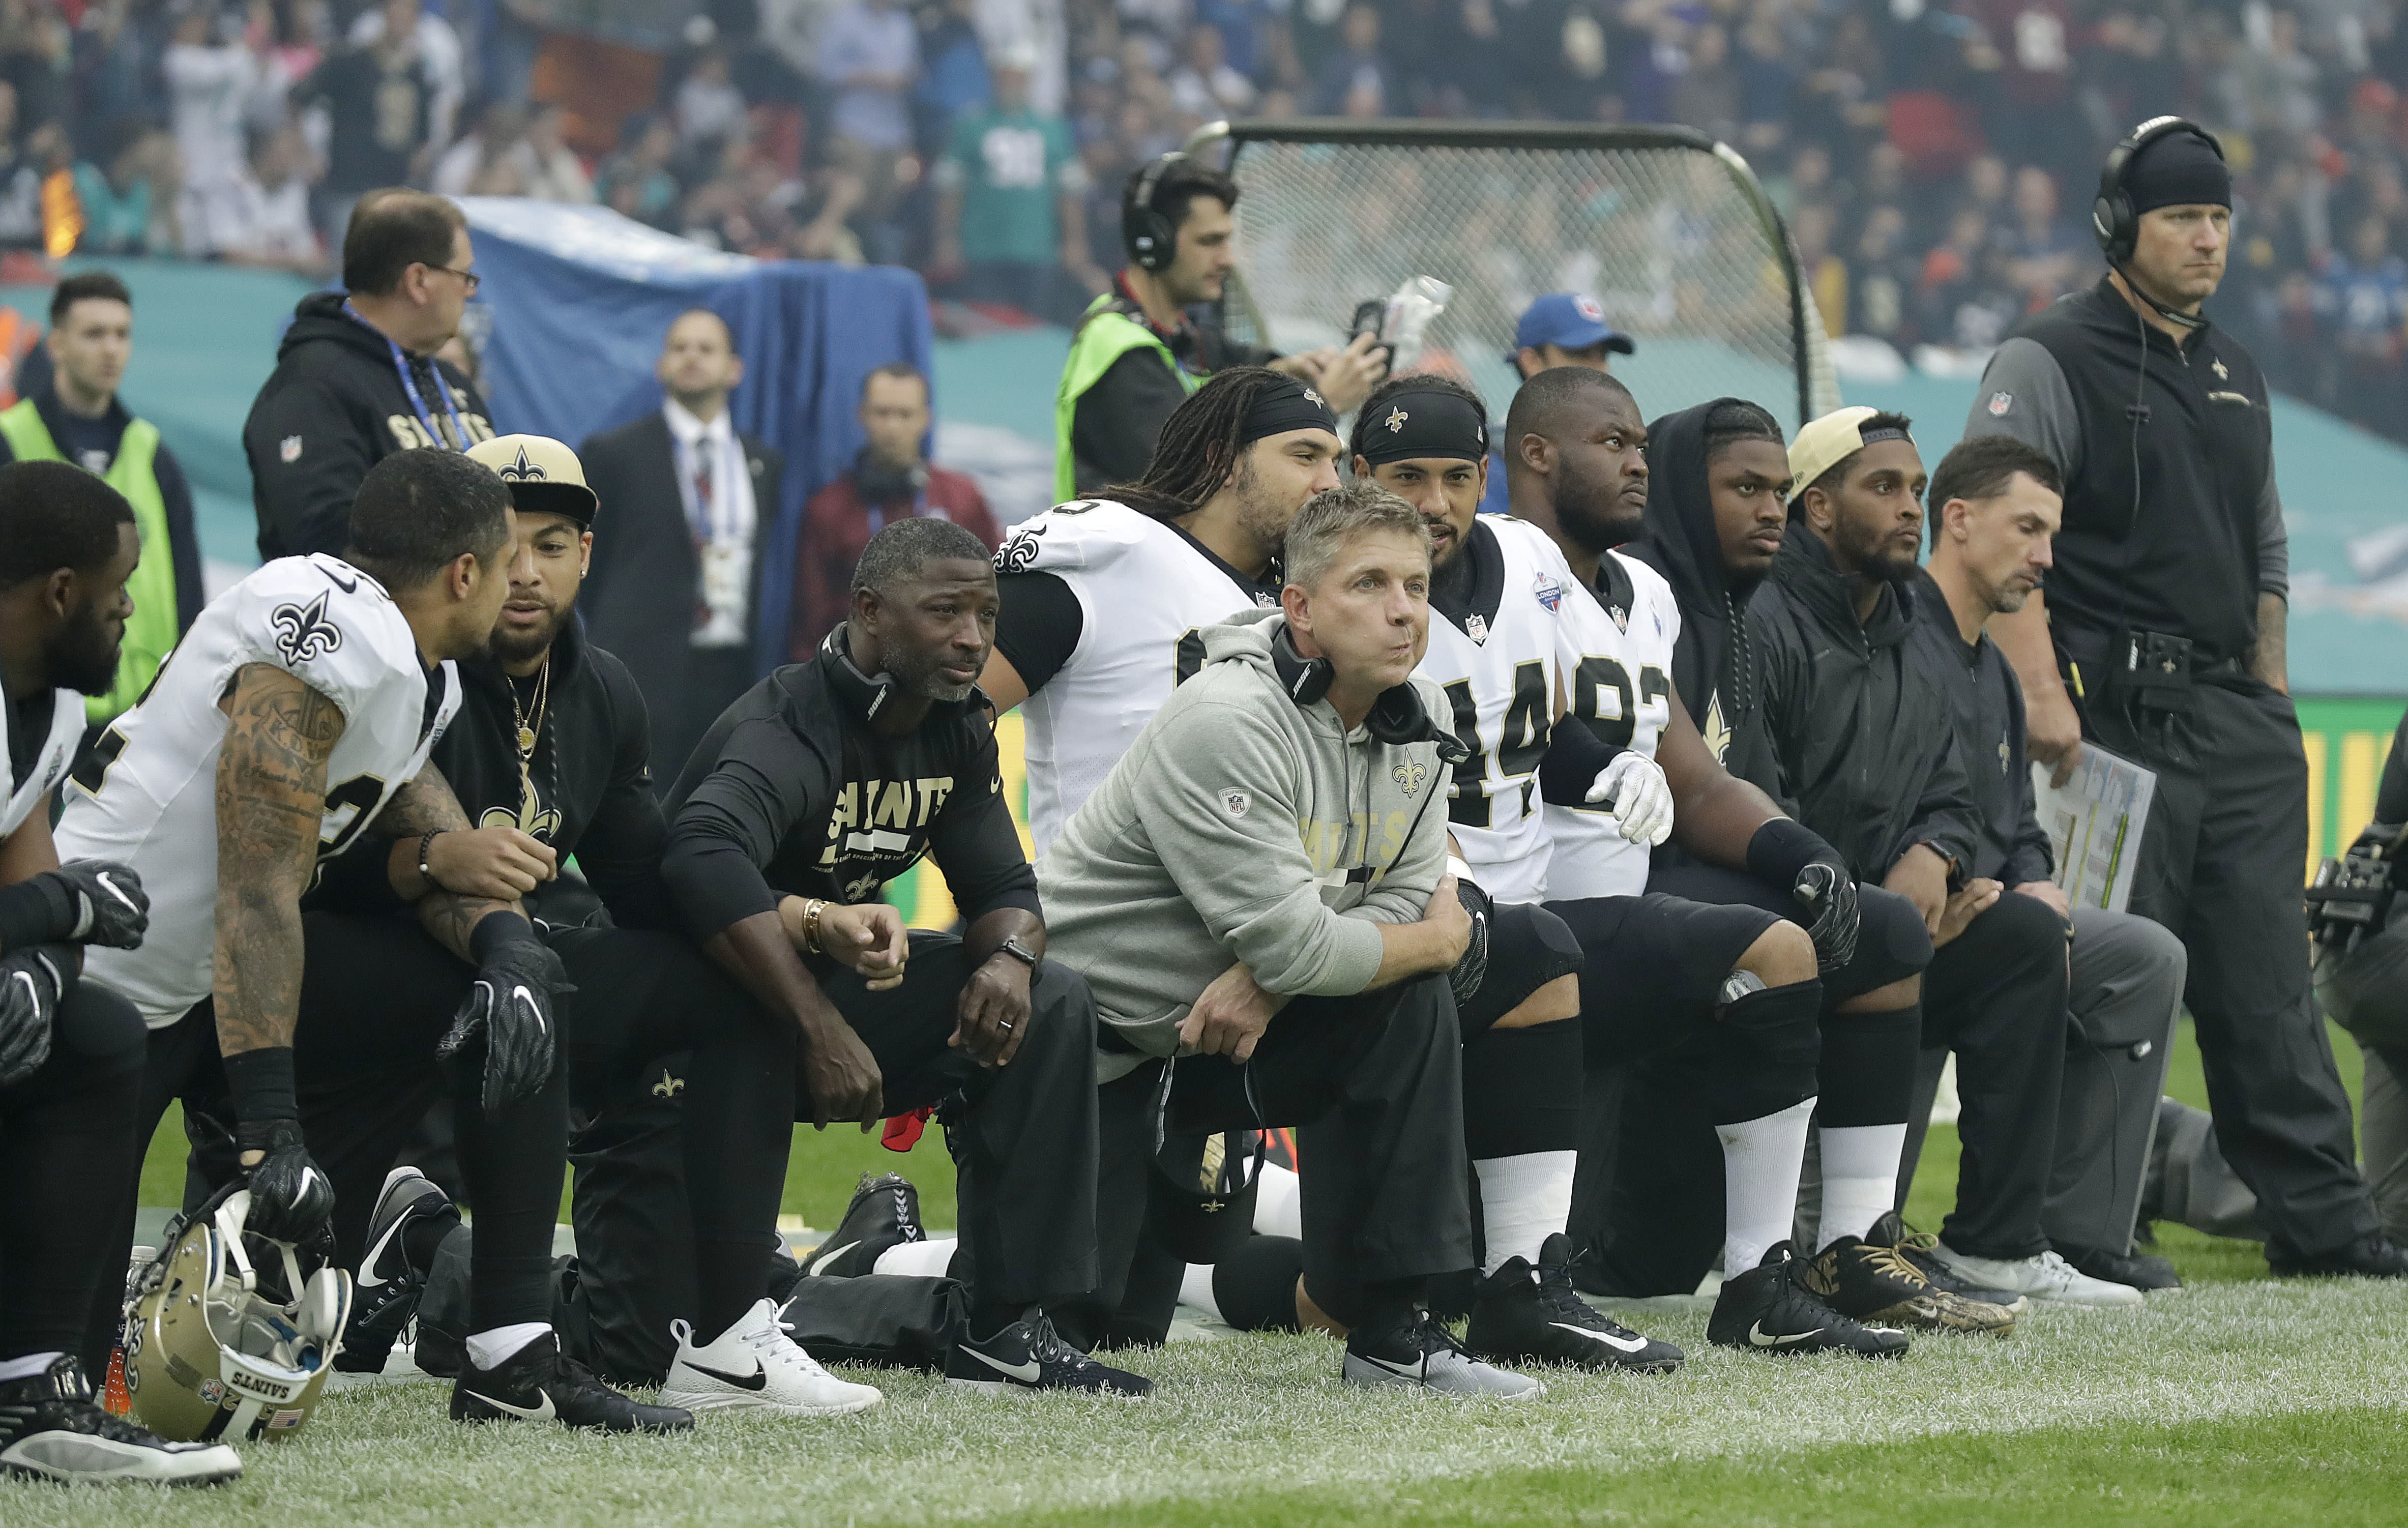 Saints season-ticket holder suing team; wants refund after player protests